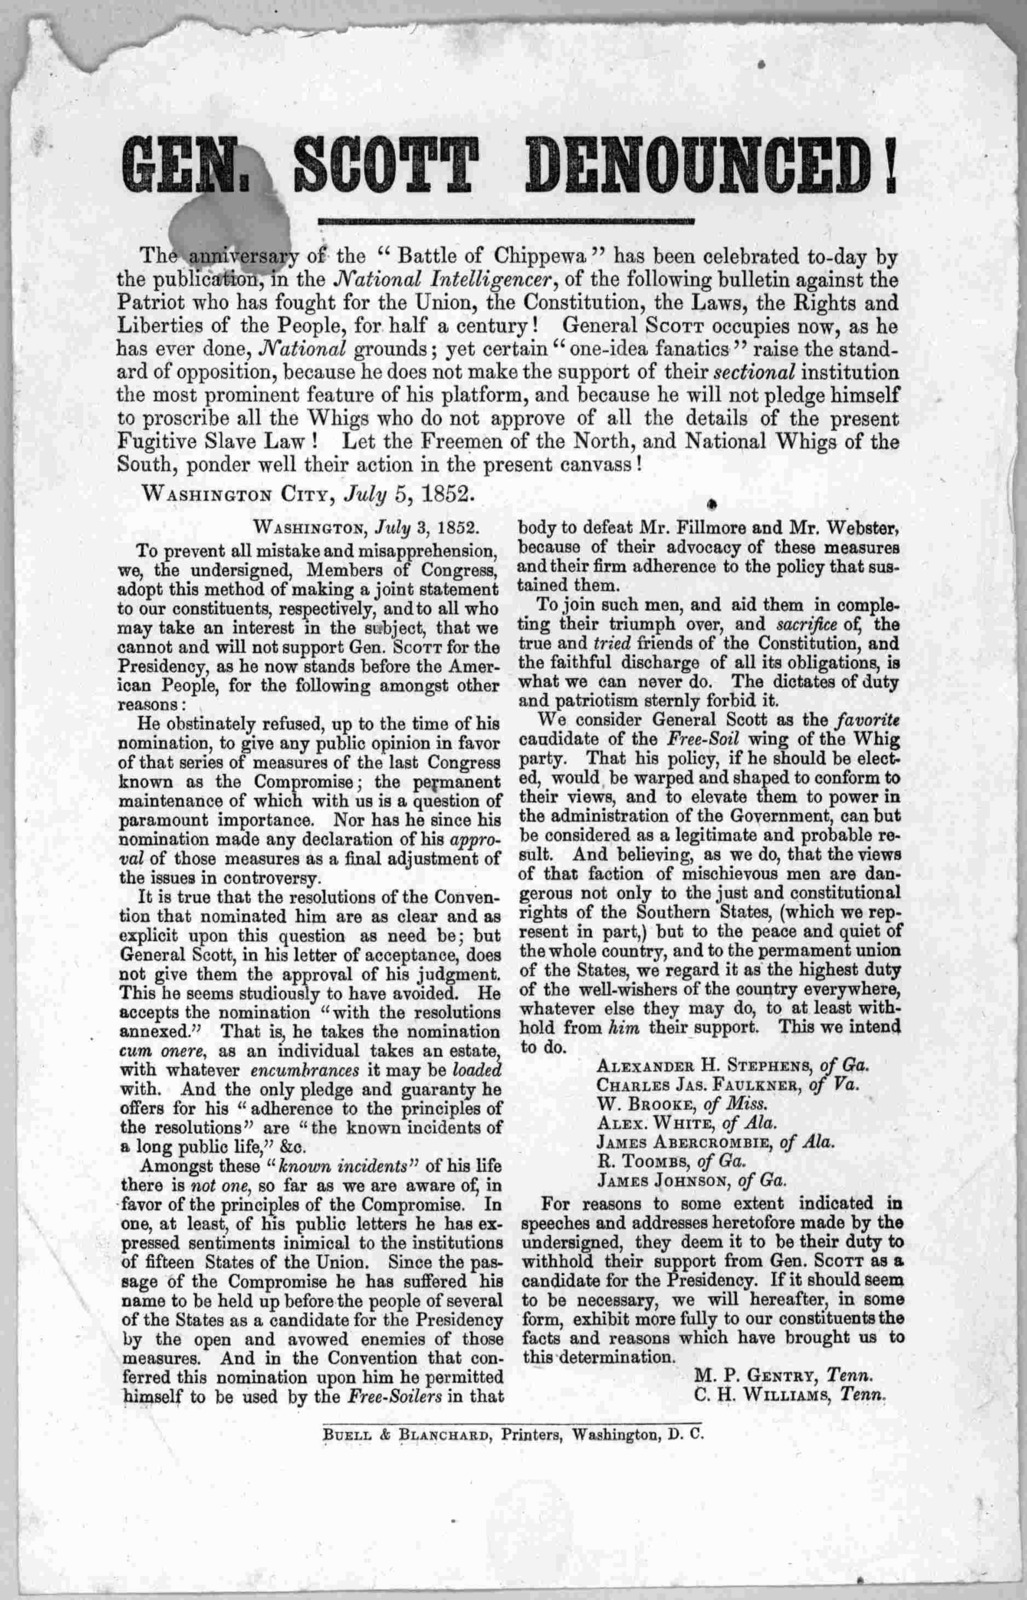 """Gen. Scott denounced! The anniversary of the """"Battle of Chippewa"""" has been celebrated to-day by the publication, in the National Intelligencer, of the following bulletin against the Patriot who has fought for the Union, the Constitution, the law"""